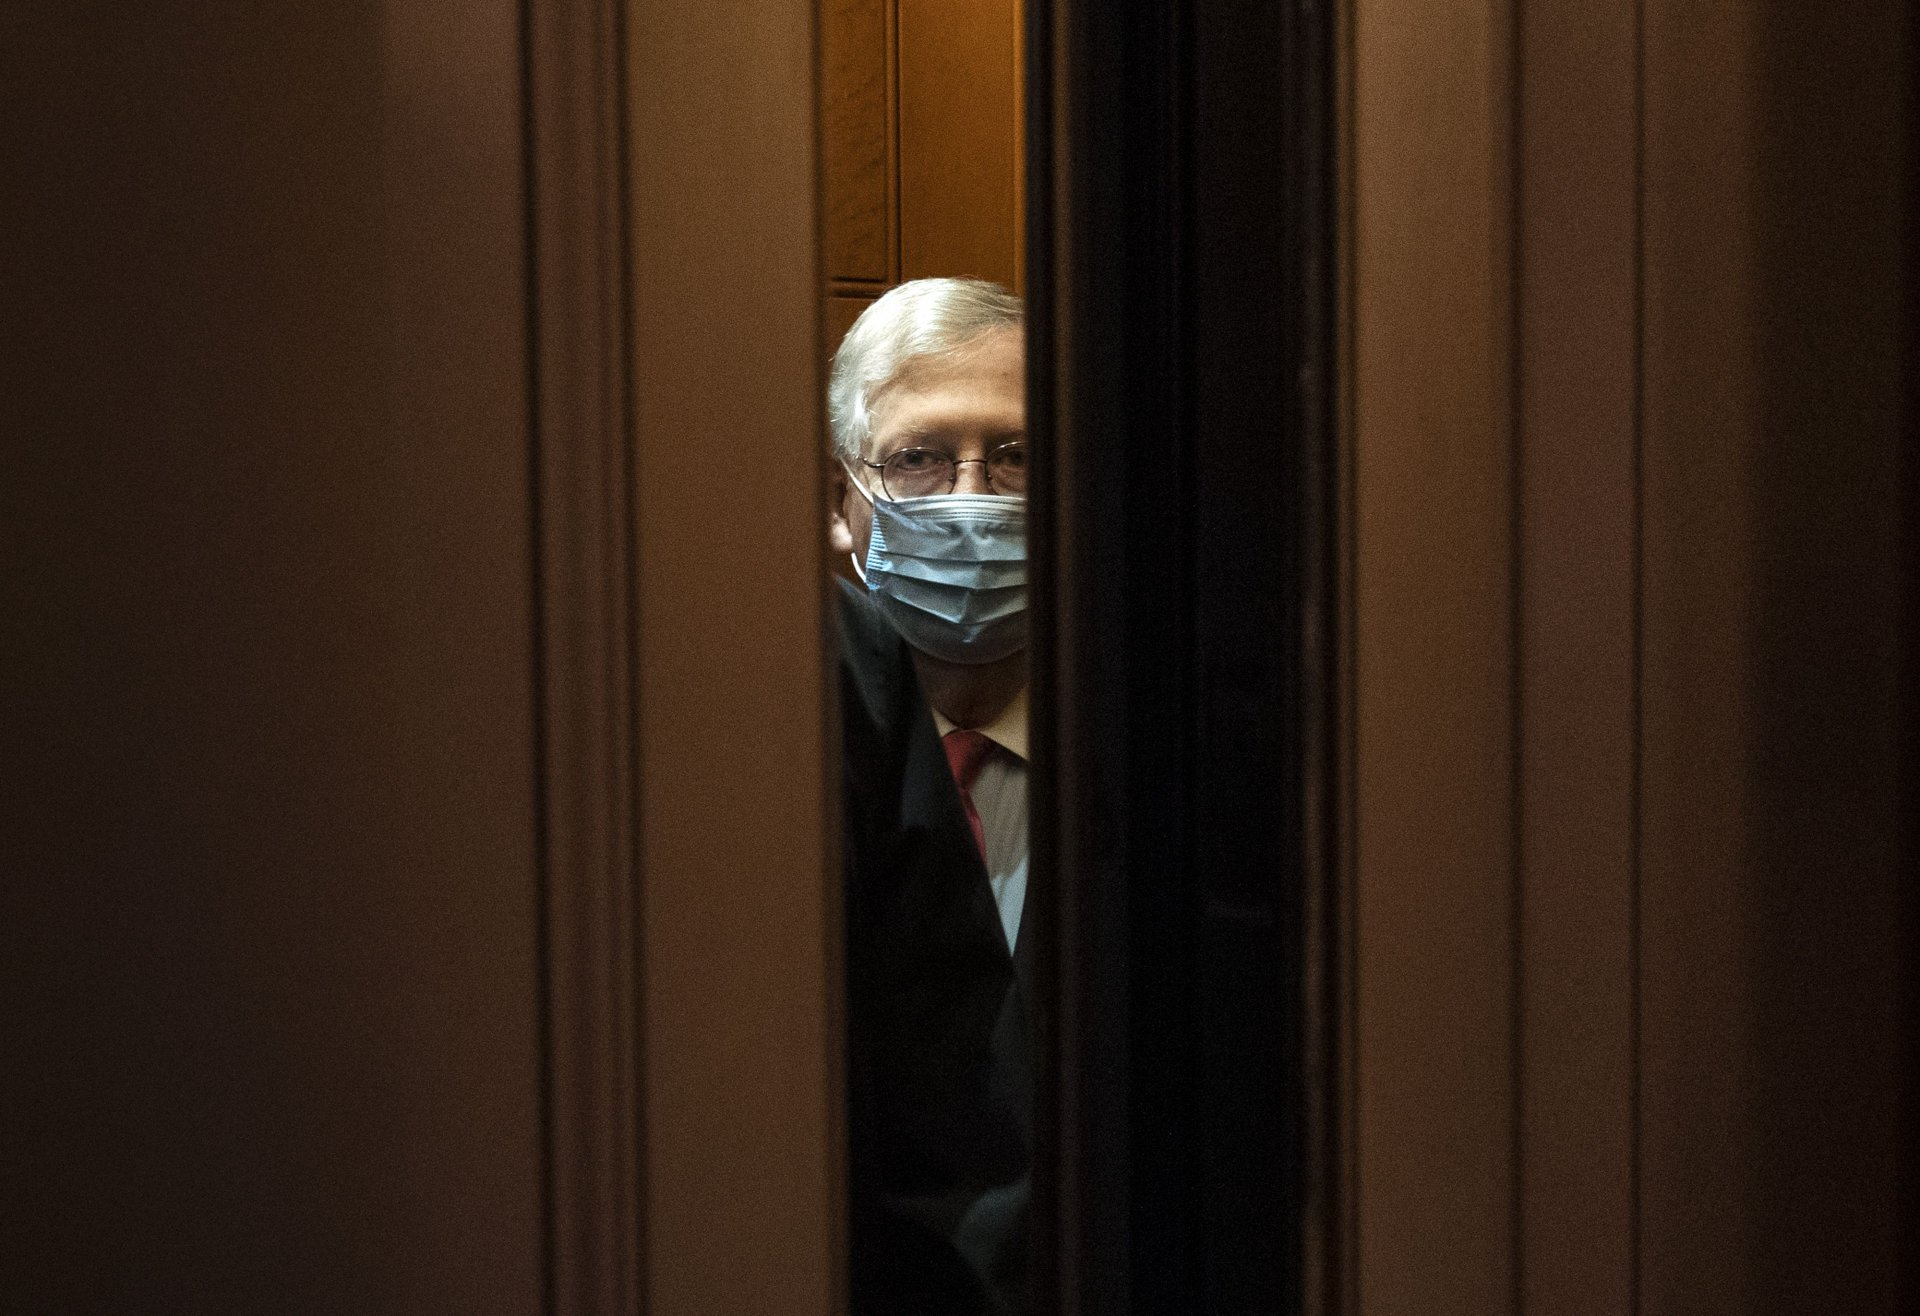 Mandatory Credit: Photo by Kevin Dietsch/UPI/Shutterstock (11664327e)Senate Majority Leader Mitch McConnell, R-KY, takes an elevator as he leaves his office at the U.